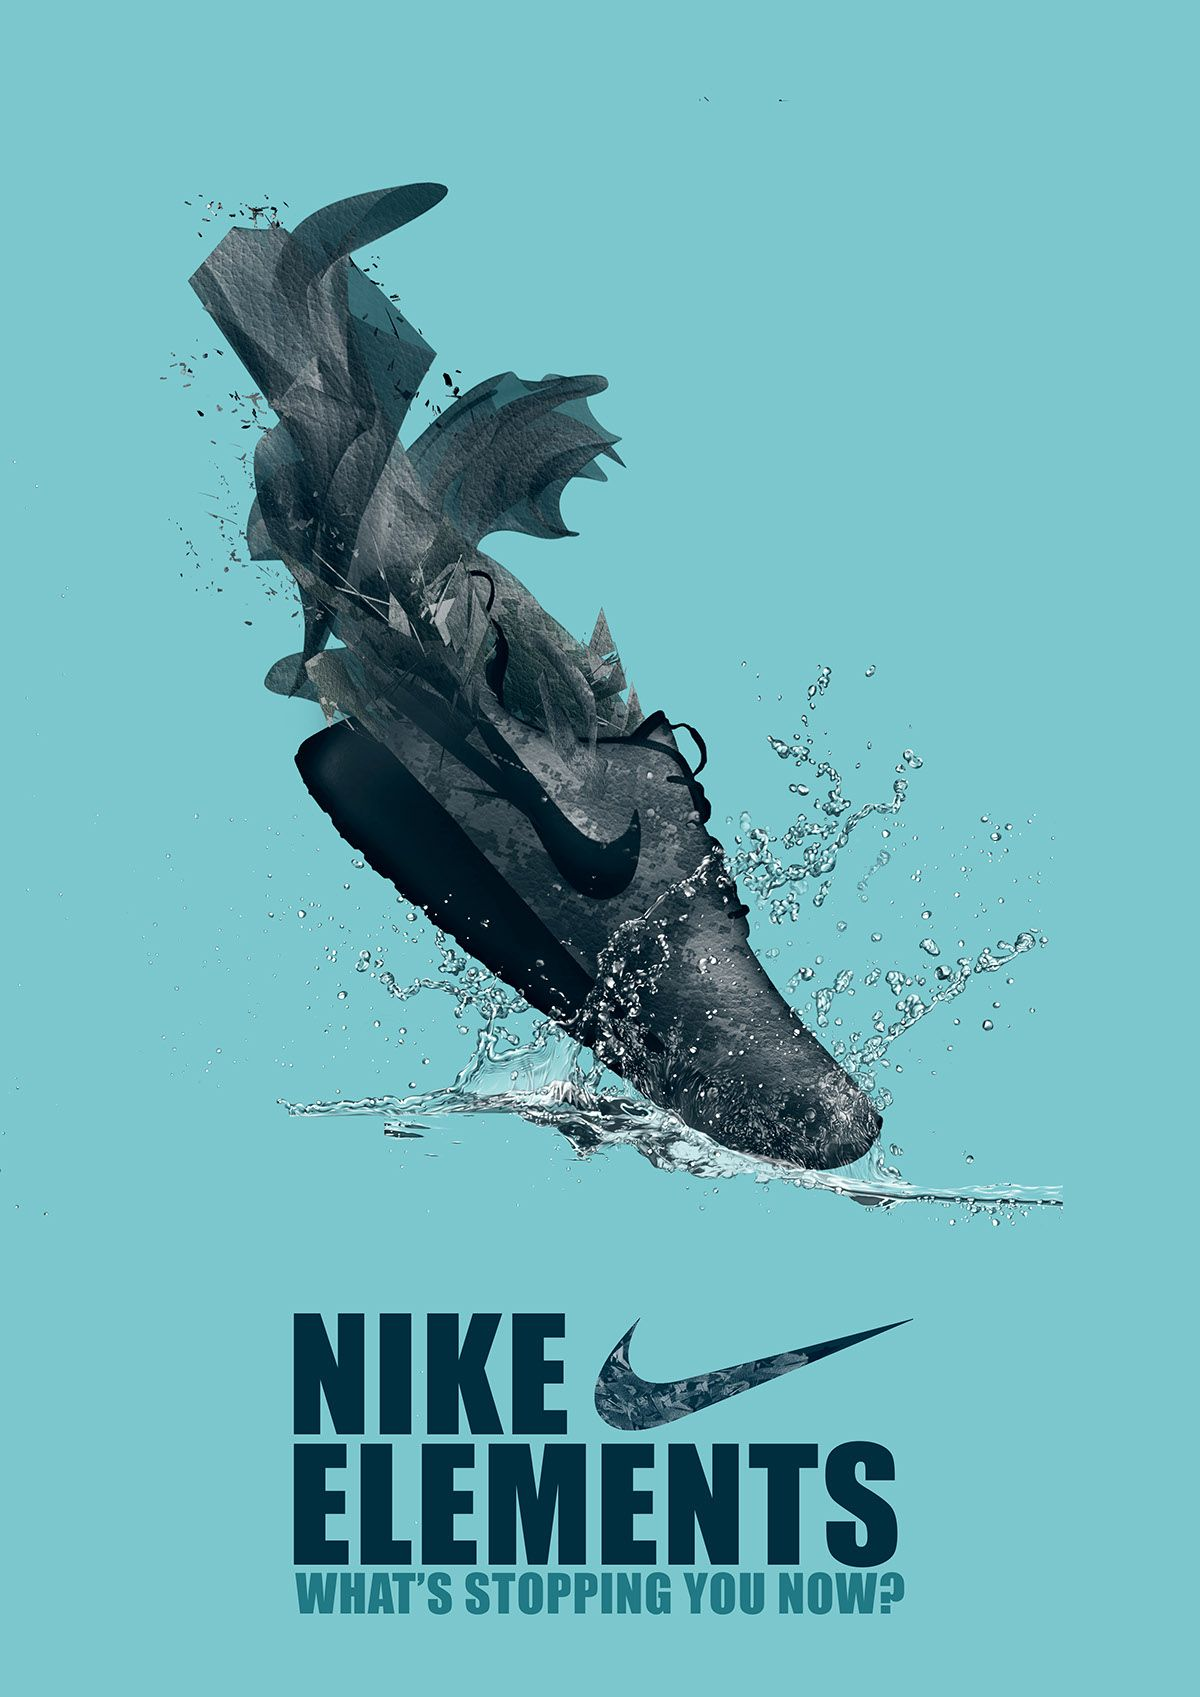 Nike Elements Advertising Campaign On Behance Advertising Campaign Shoe Advertising Sneakers Illustration